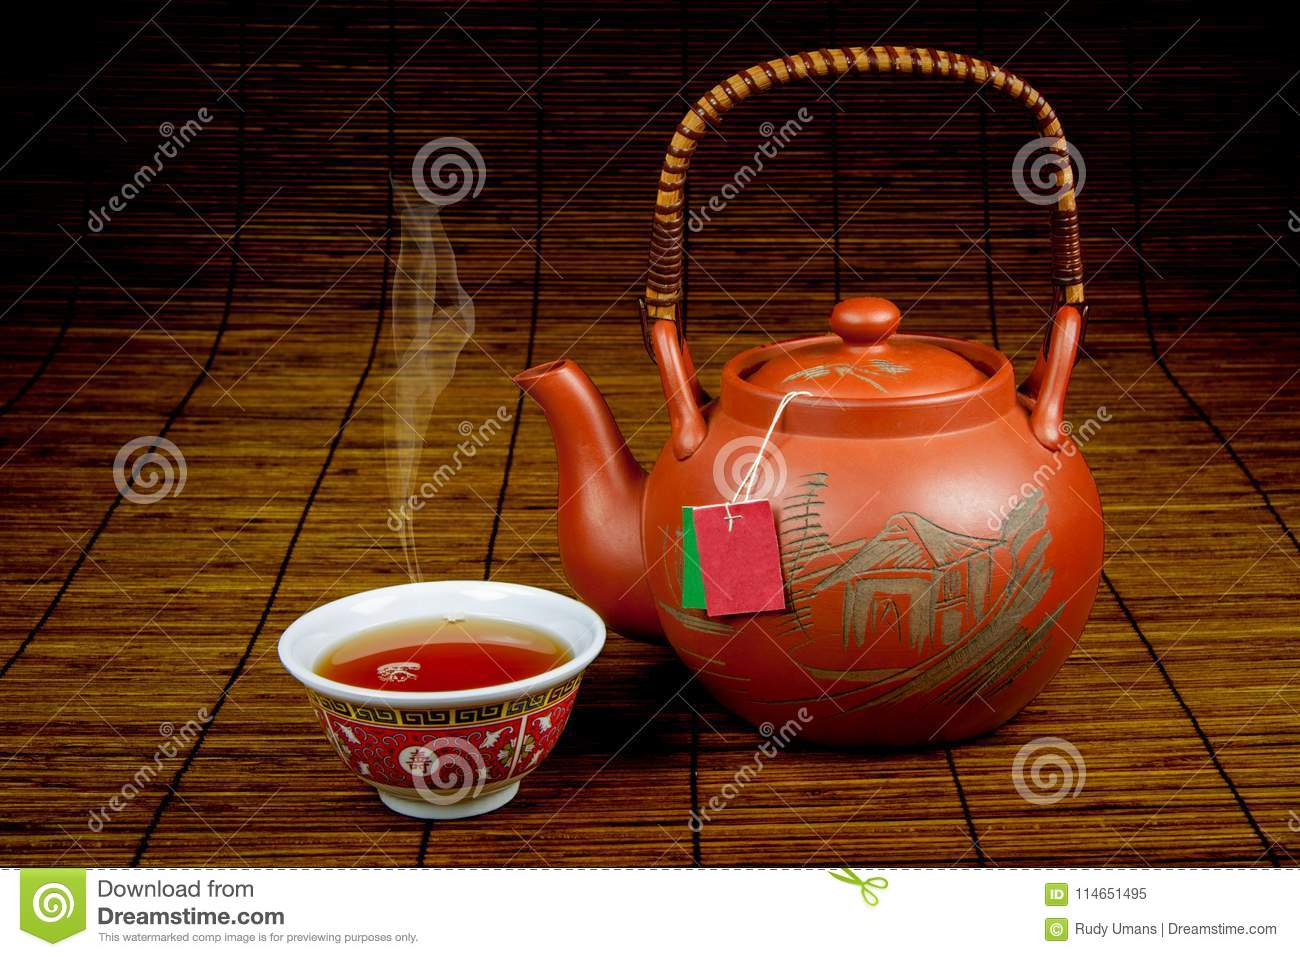 Pouring Chinese tea in a cup-1